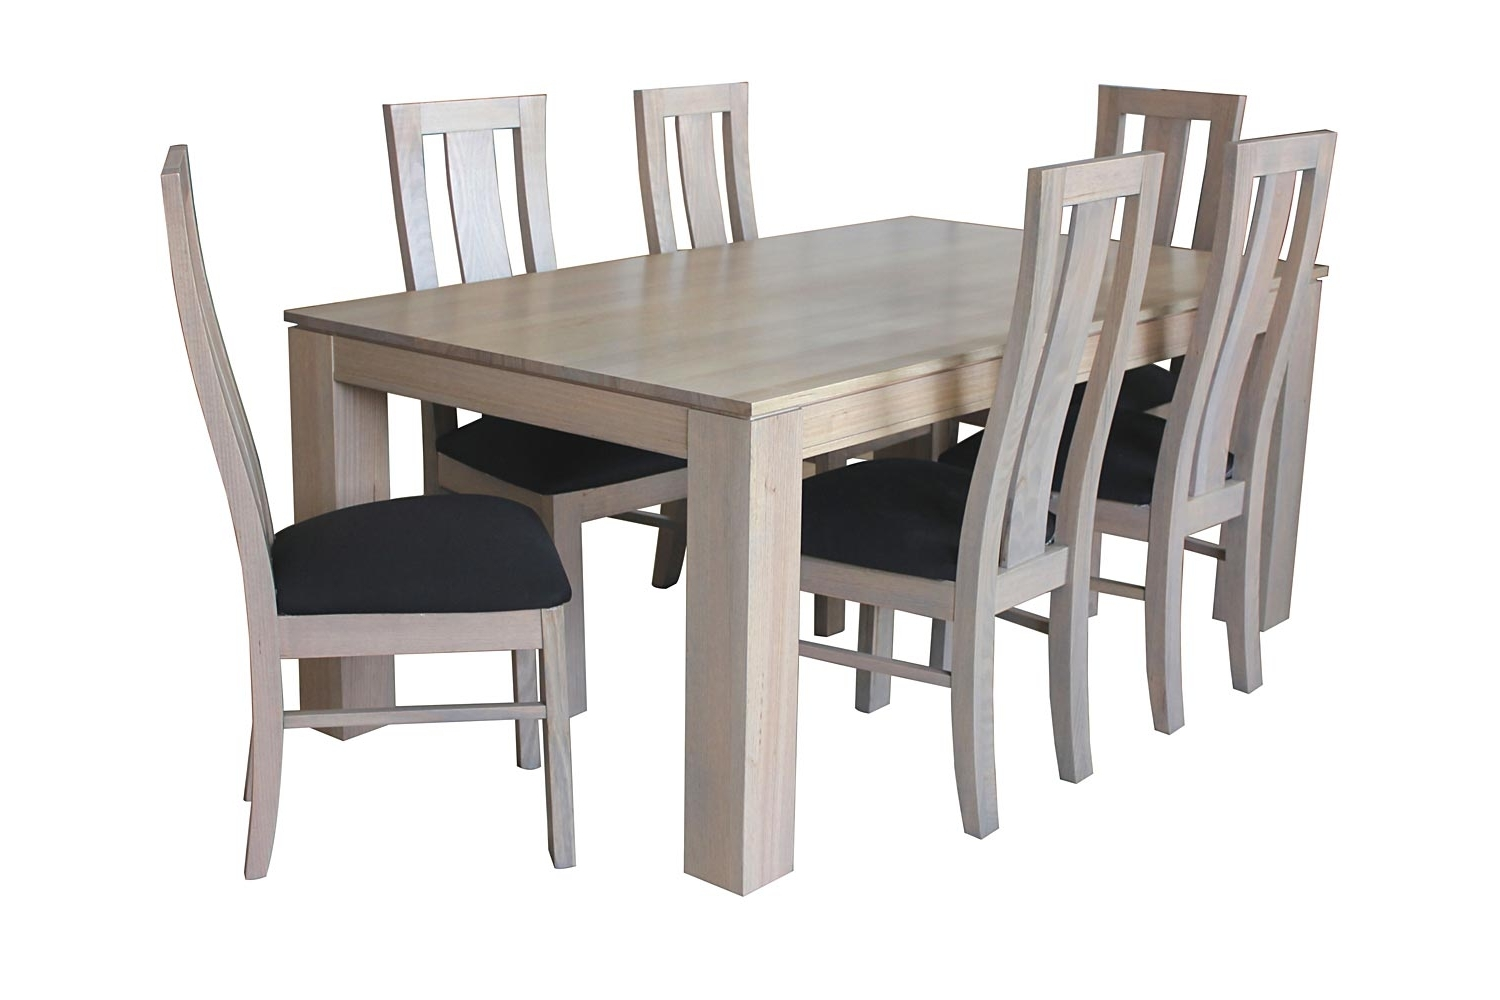 Trendy Kingston Dining Setting – Tessa Furniture Within Kingston Dining Tables And Chairs (View 23 of 25)